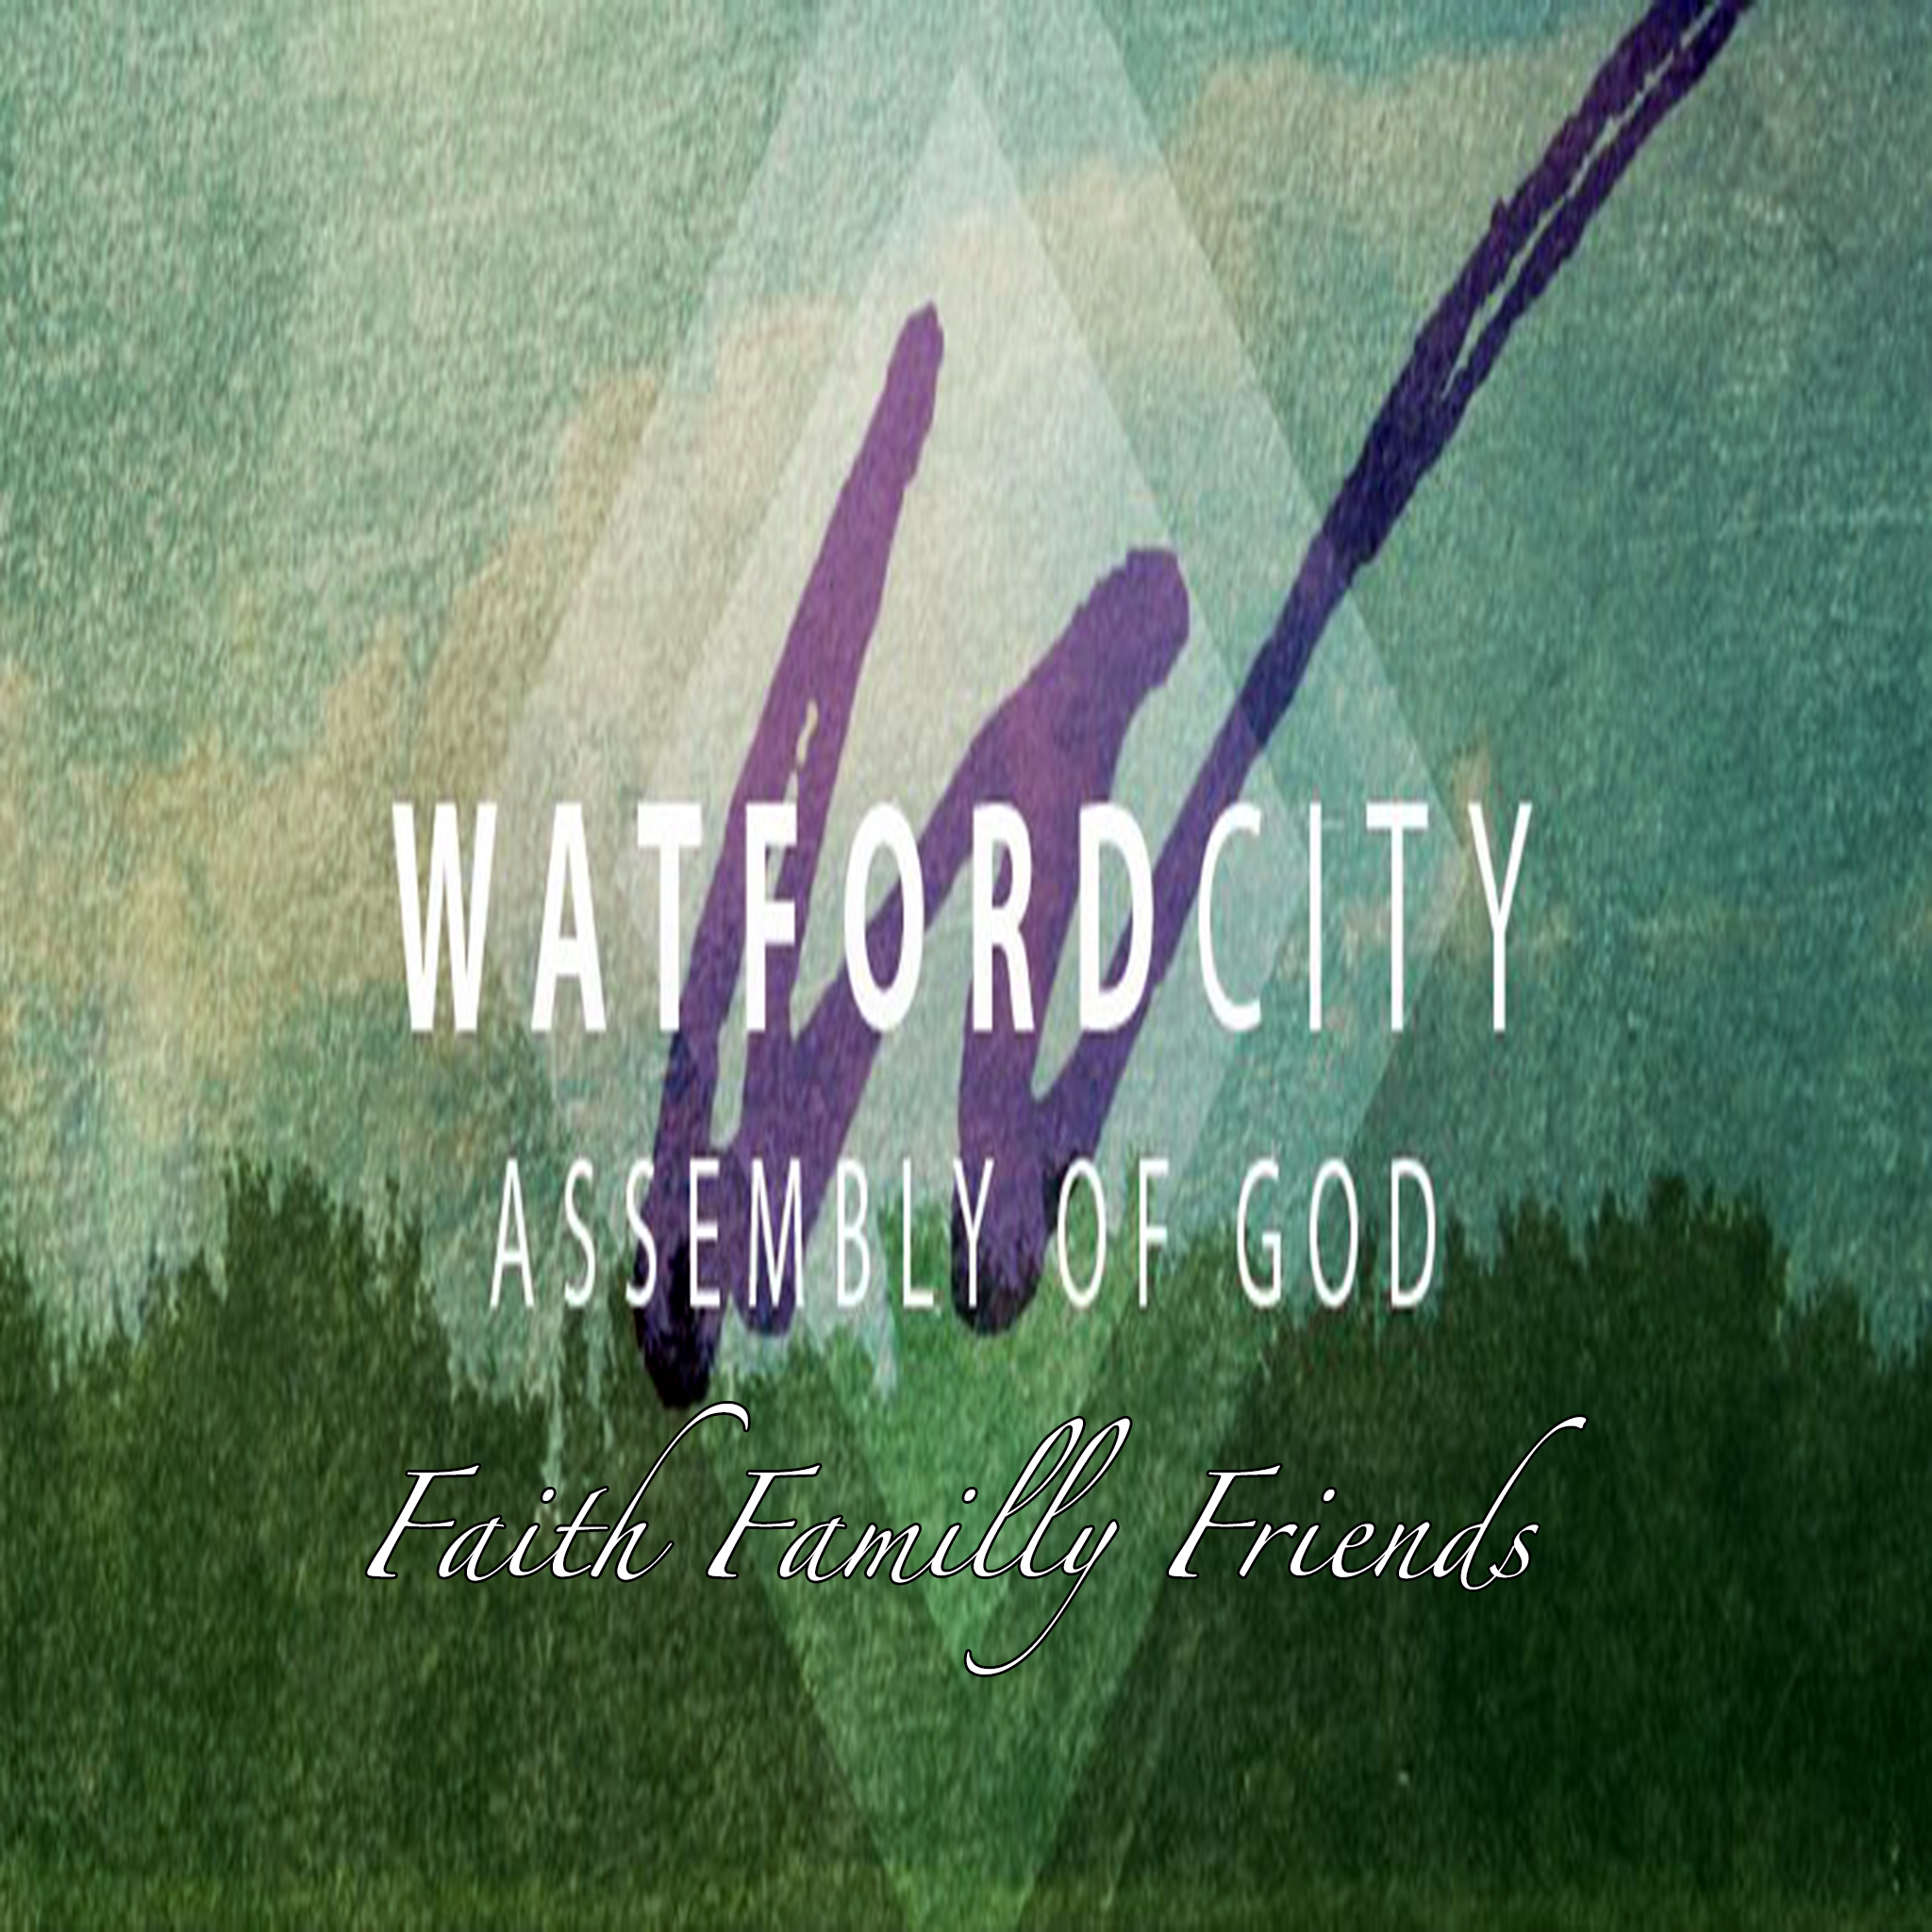 Watford City Assembly of God